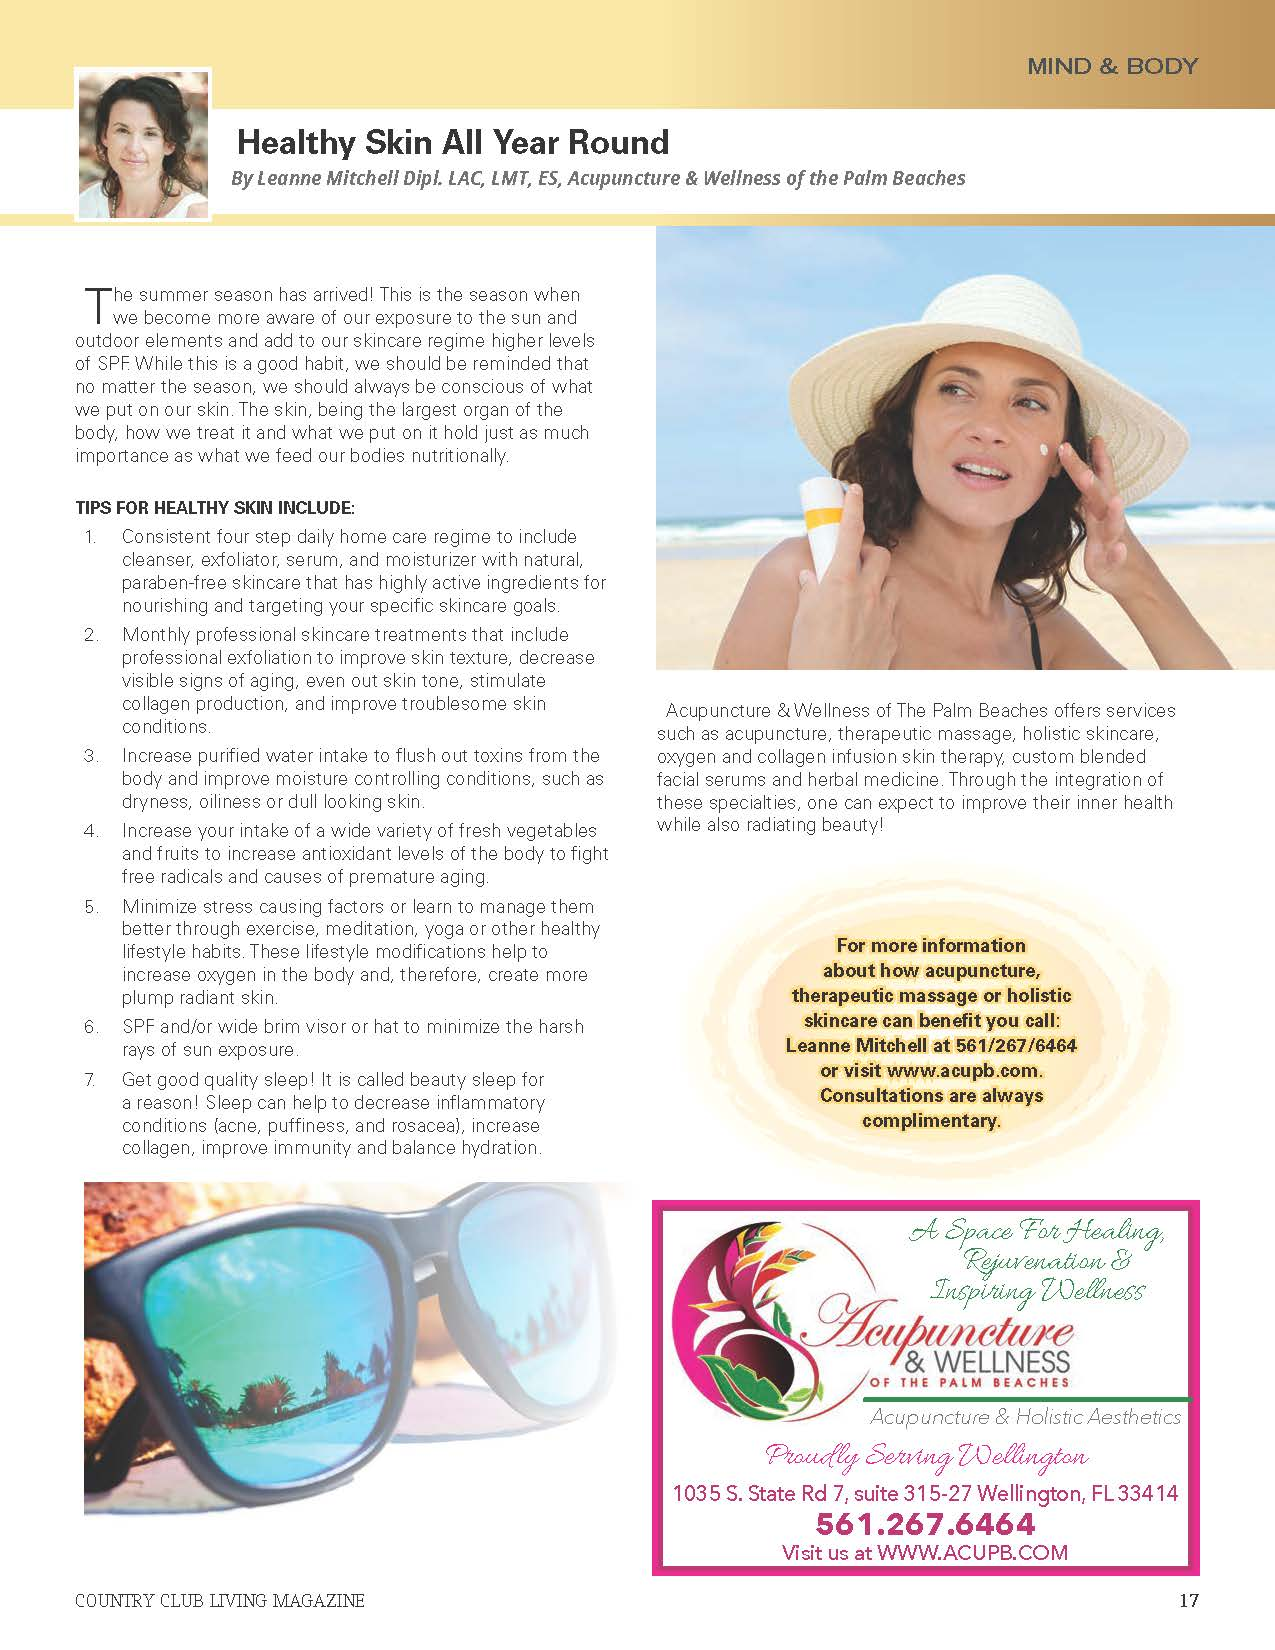 acupuncture and wellness of the palm beaches- healthy skin all year round